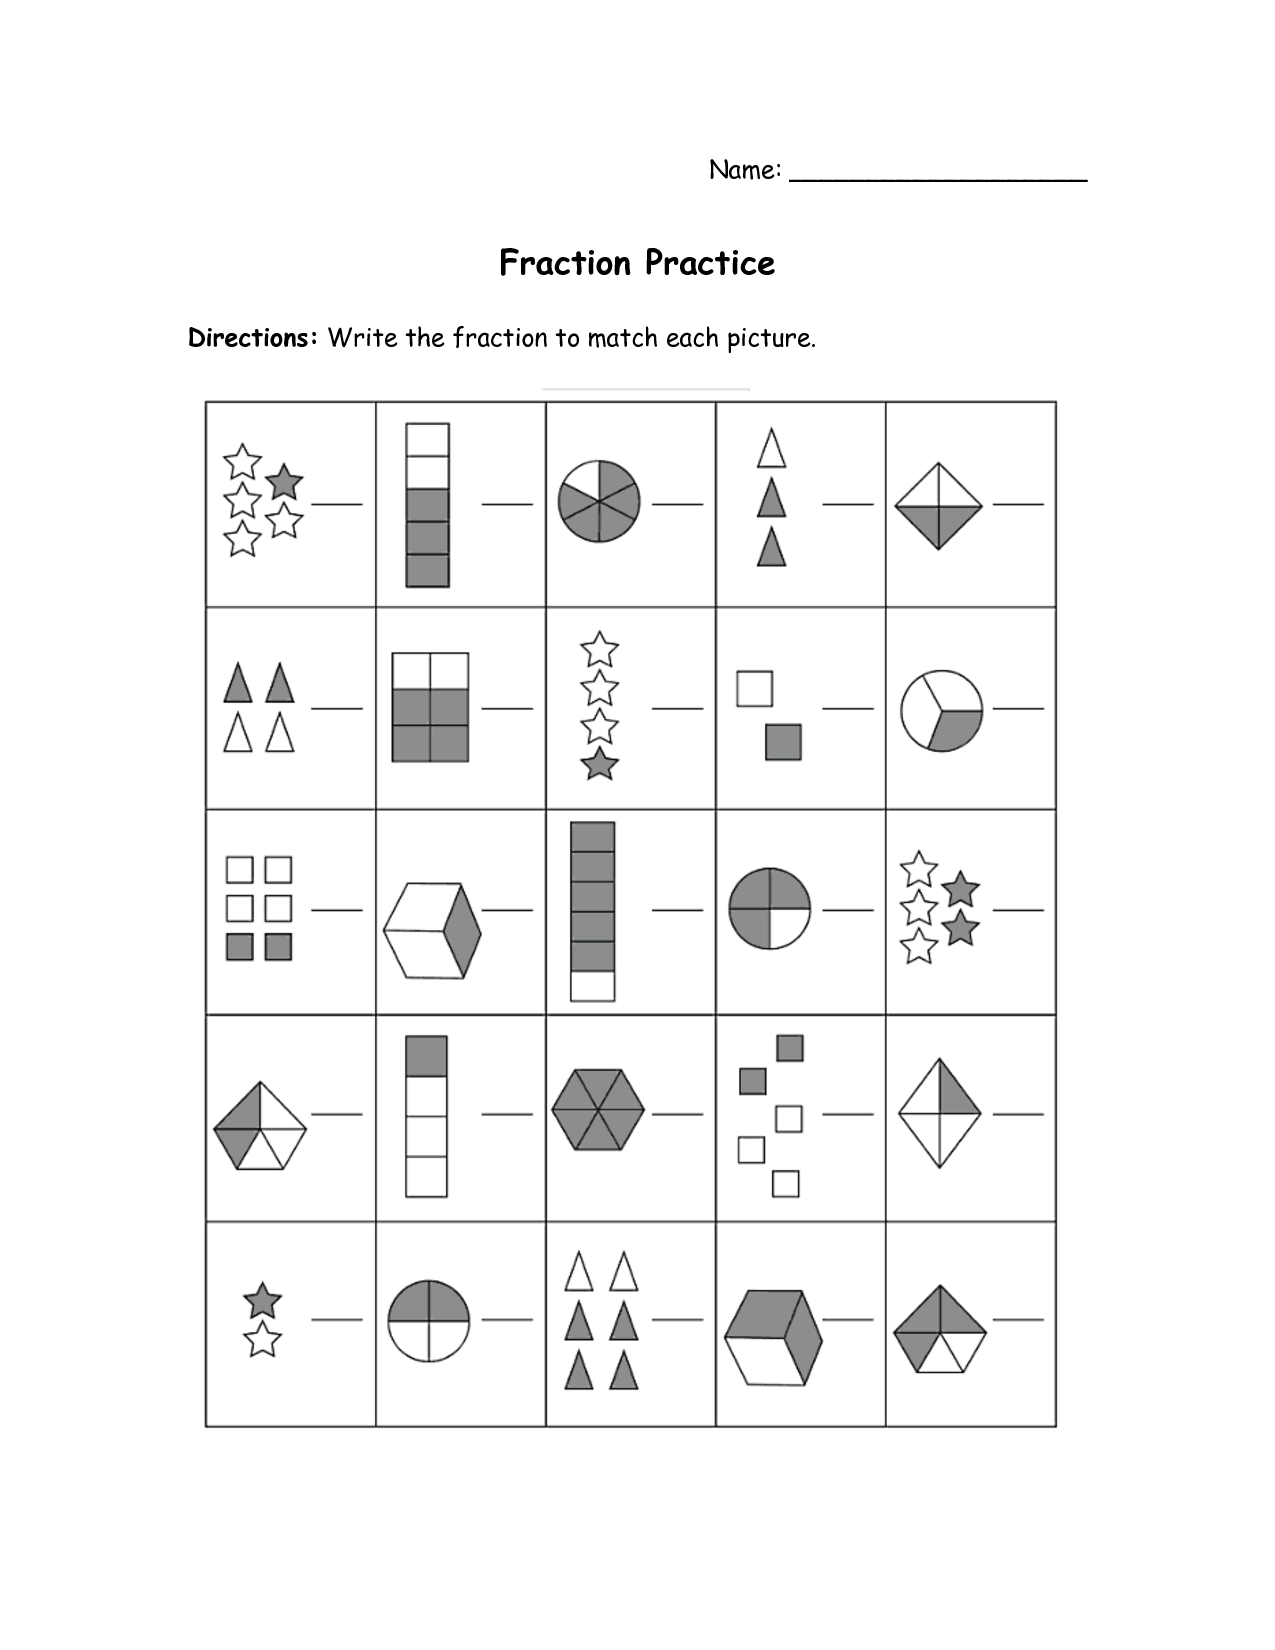 Reducing Fractions Worksheet For 3rd Grade